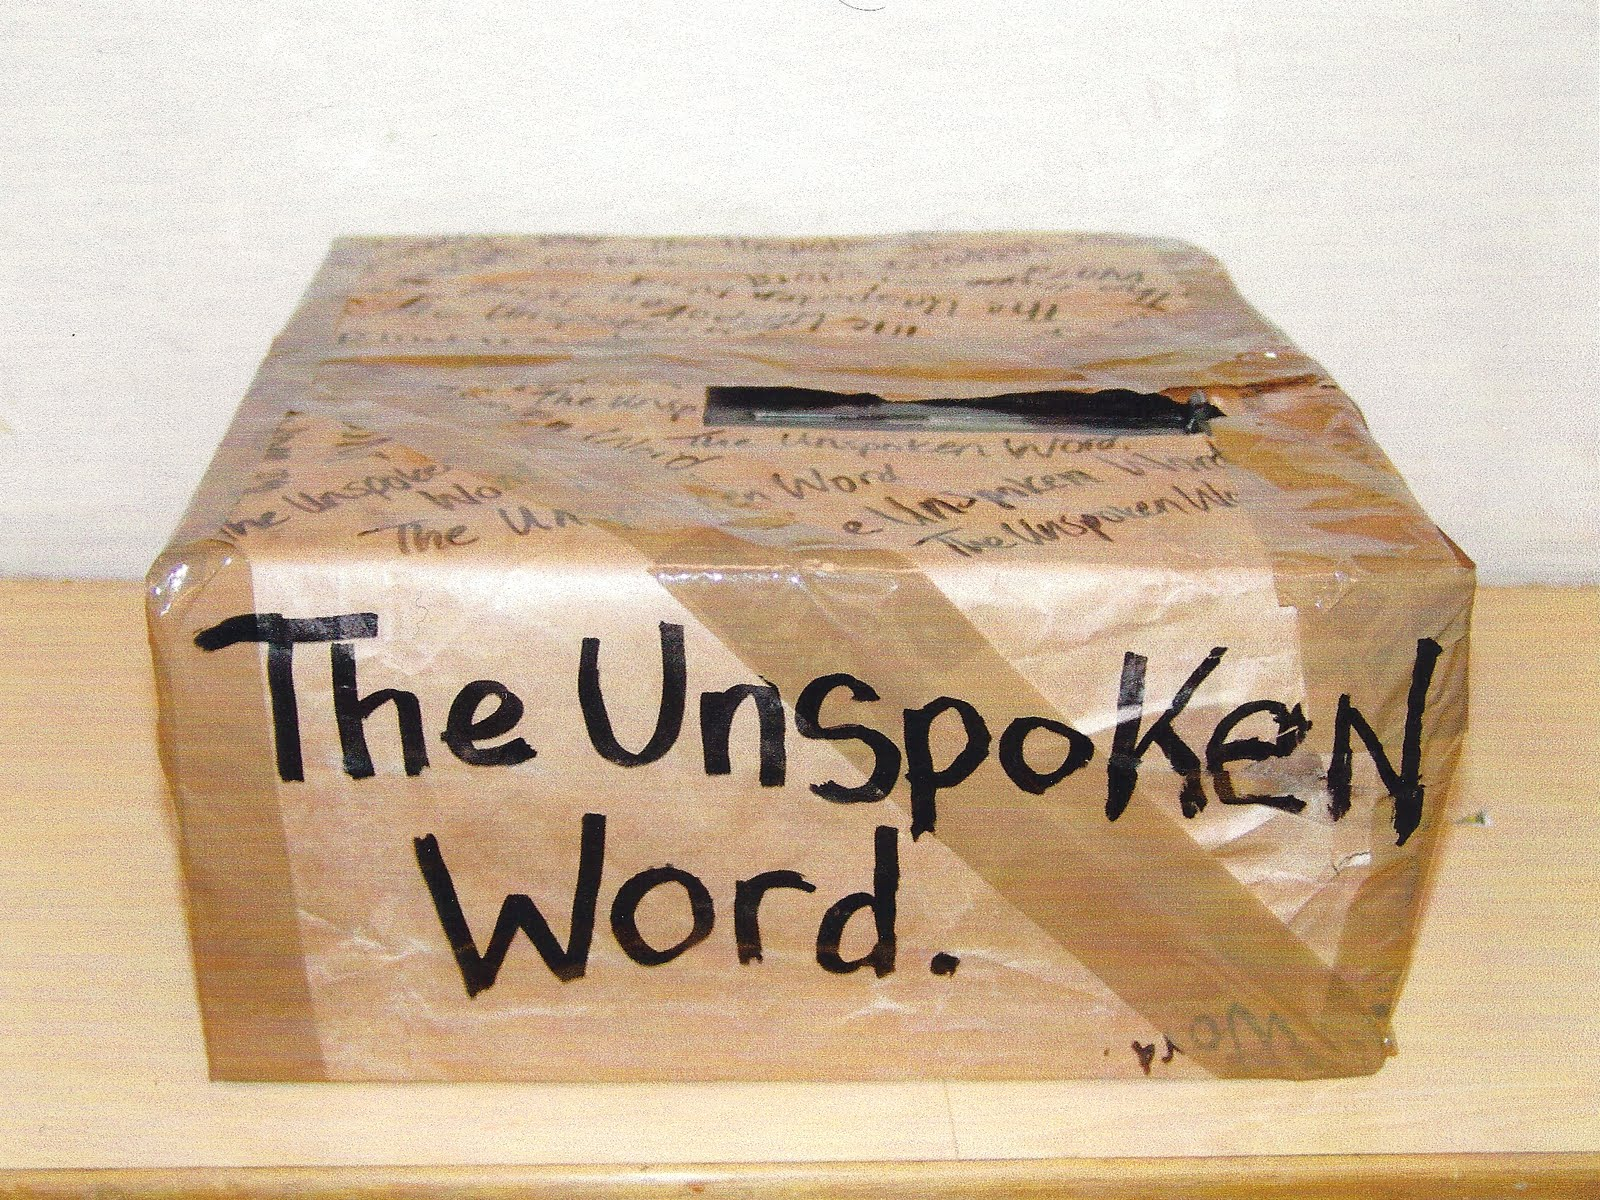 [THE+UNSPOKEN+WORD]